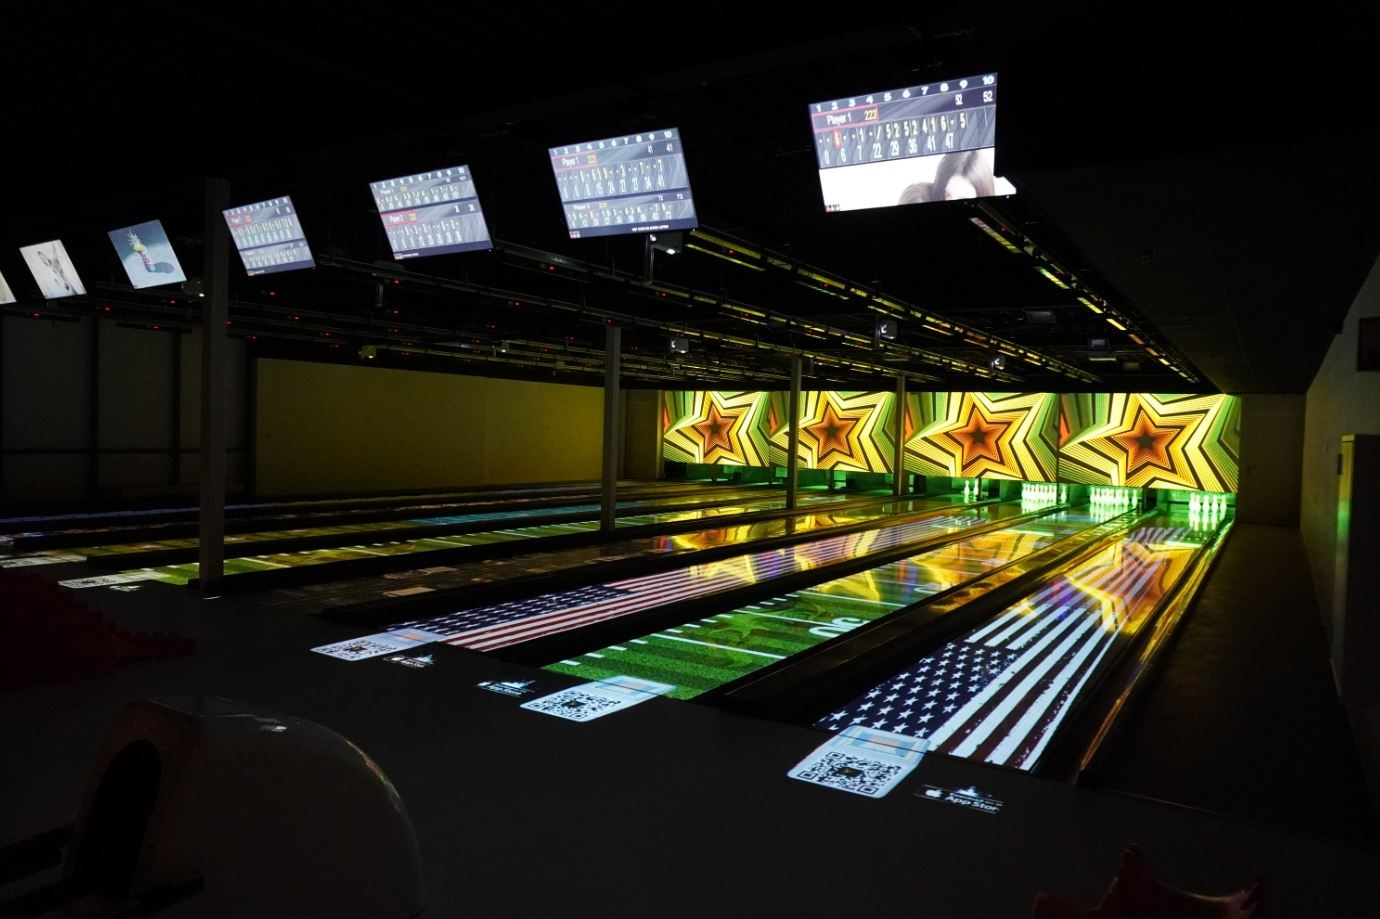 A new era of bowling with Optoma immersive projection